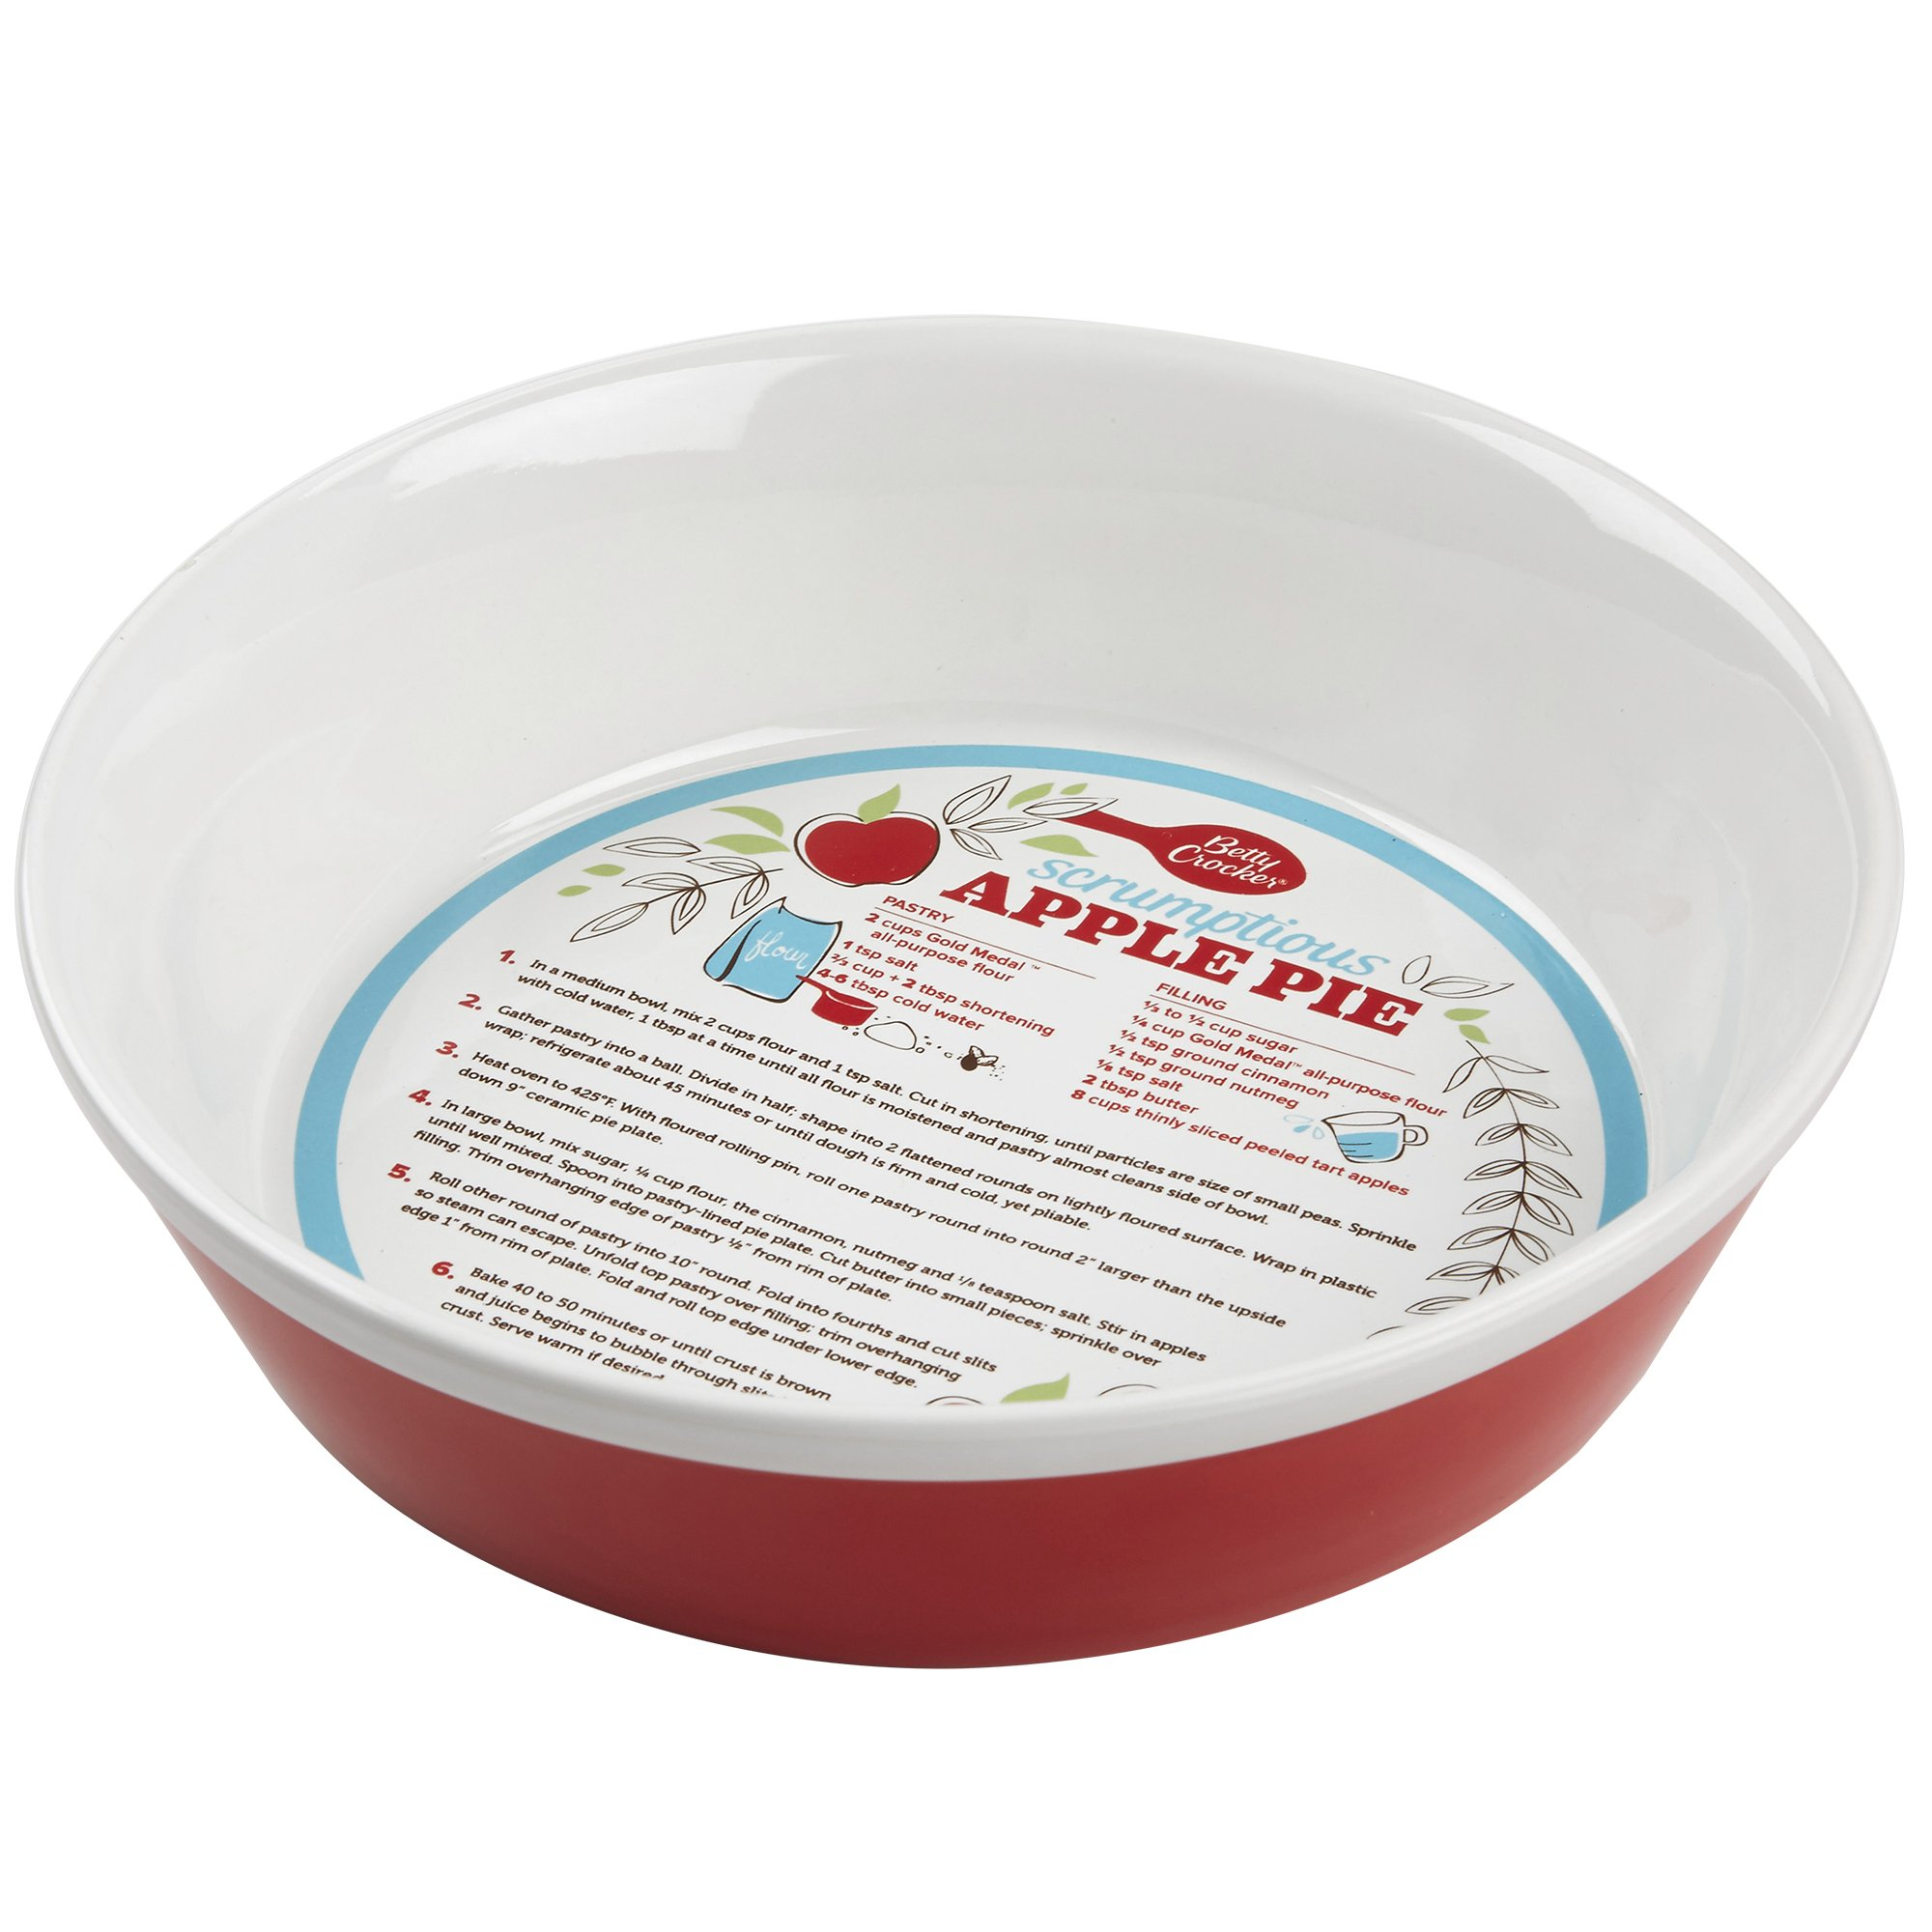 Betty Crocker 28619 Ceramic Pie Plate, Red